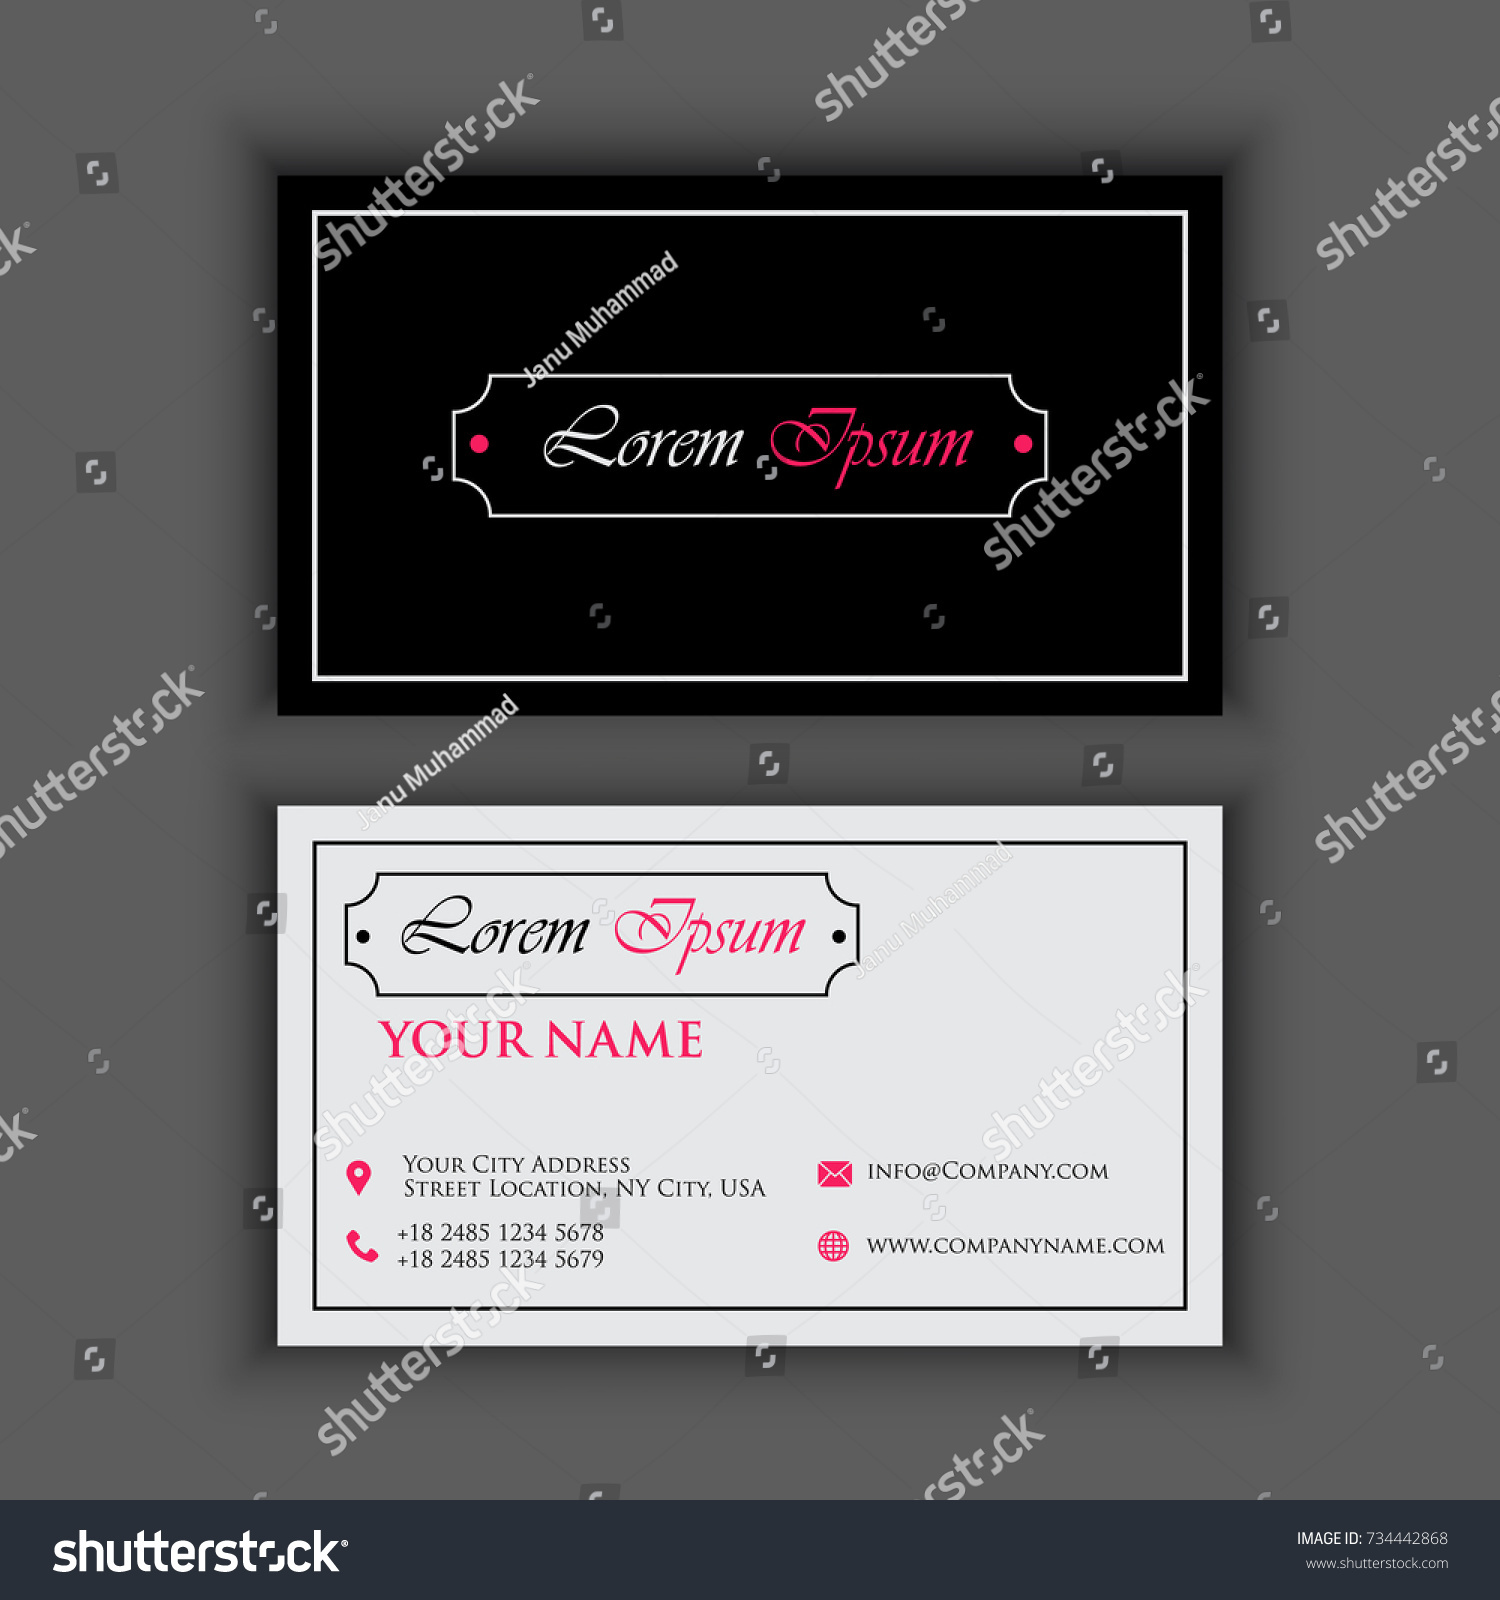 Vintage Business Card Images - Free Business Cards